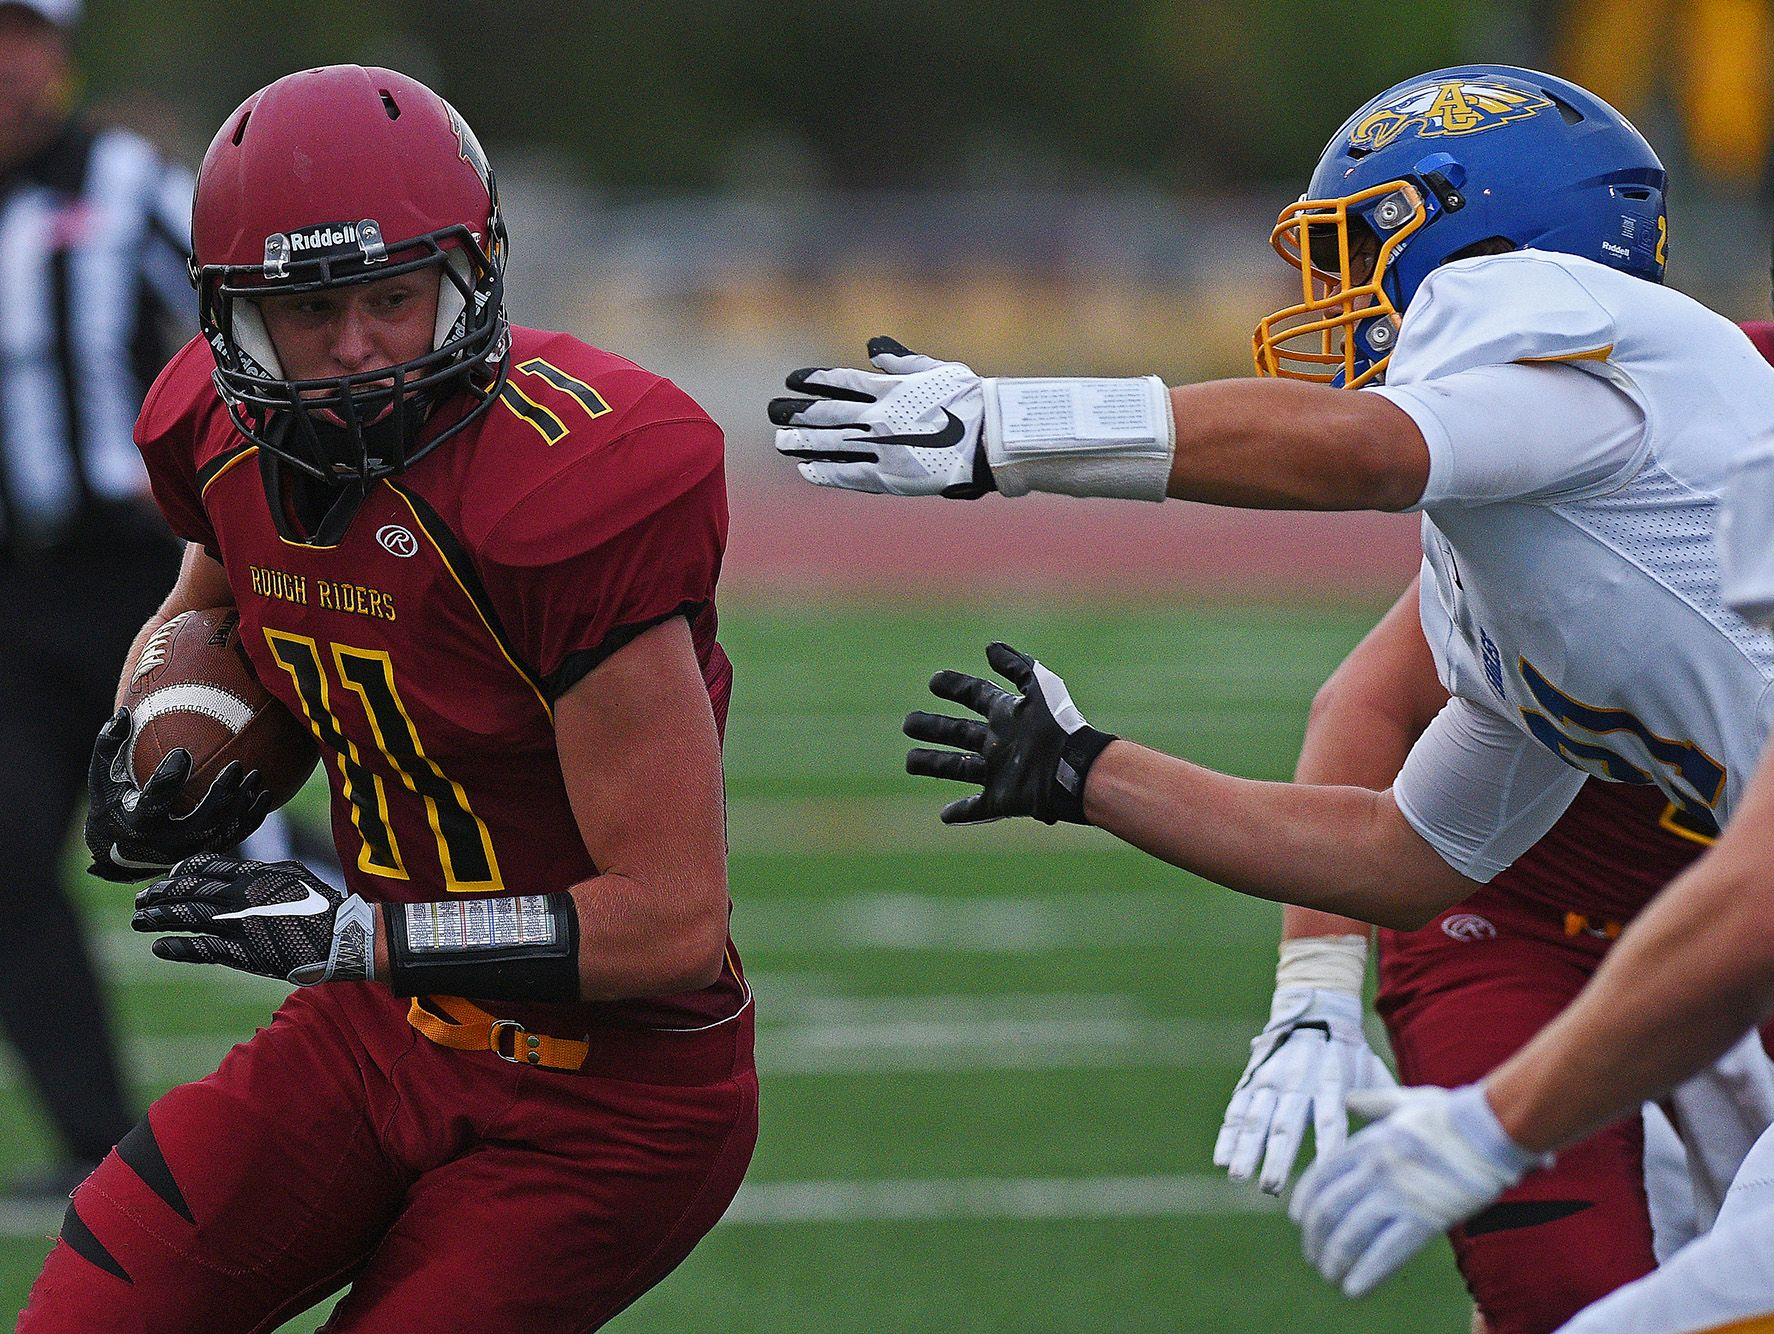 Roosevelt's Nathan Varns (11) rushes with the ball during a game against Aberdeen Central Friday, Aug. 26, 2016, at Howard Wood Field in Sioux Falls.